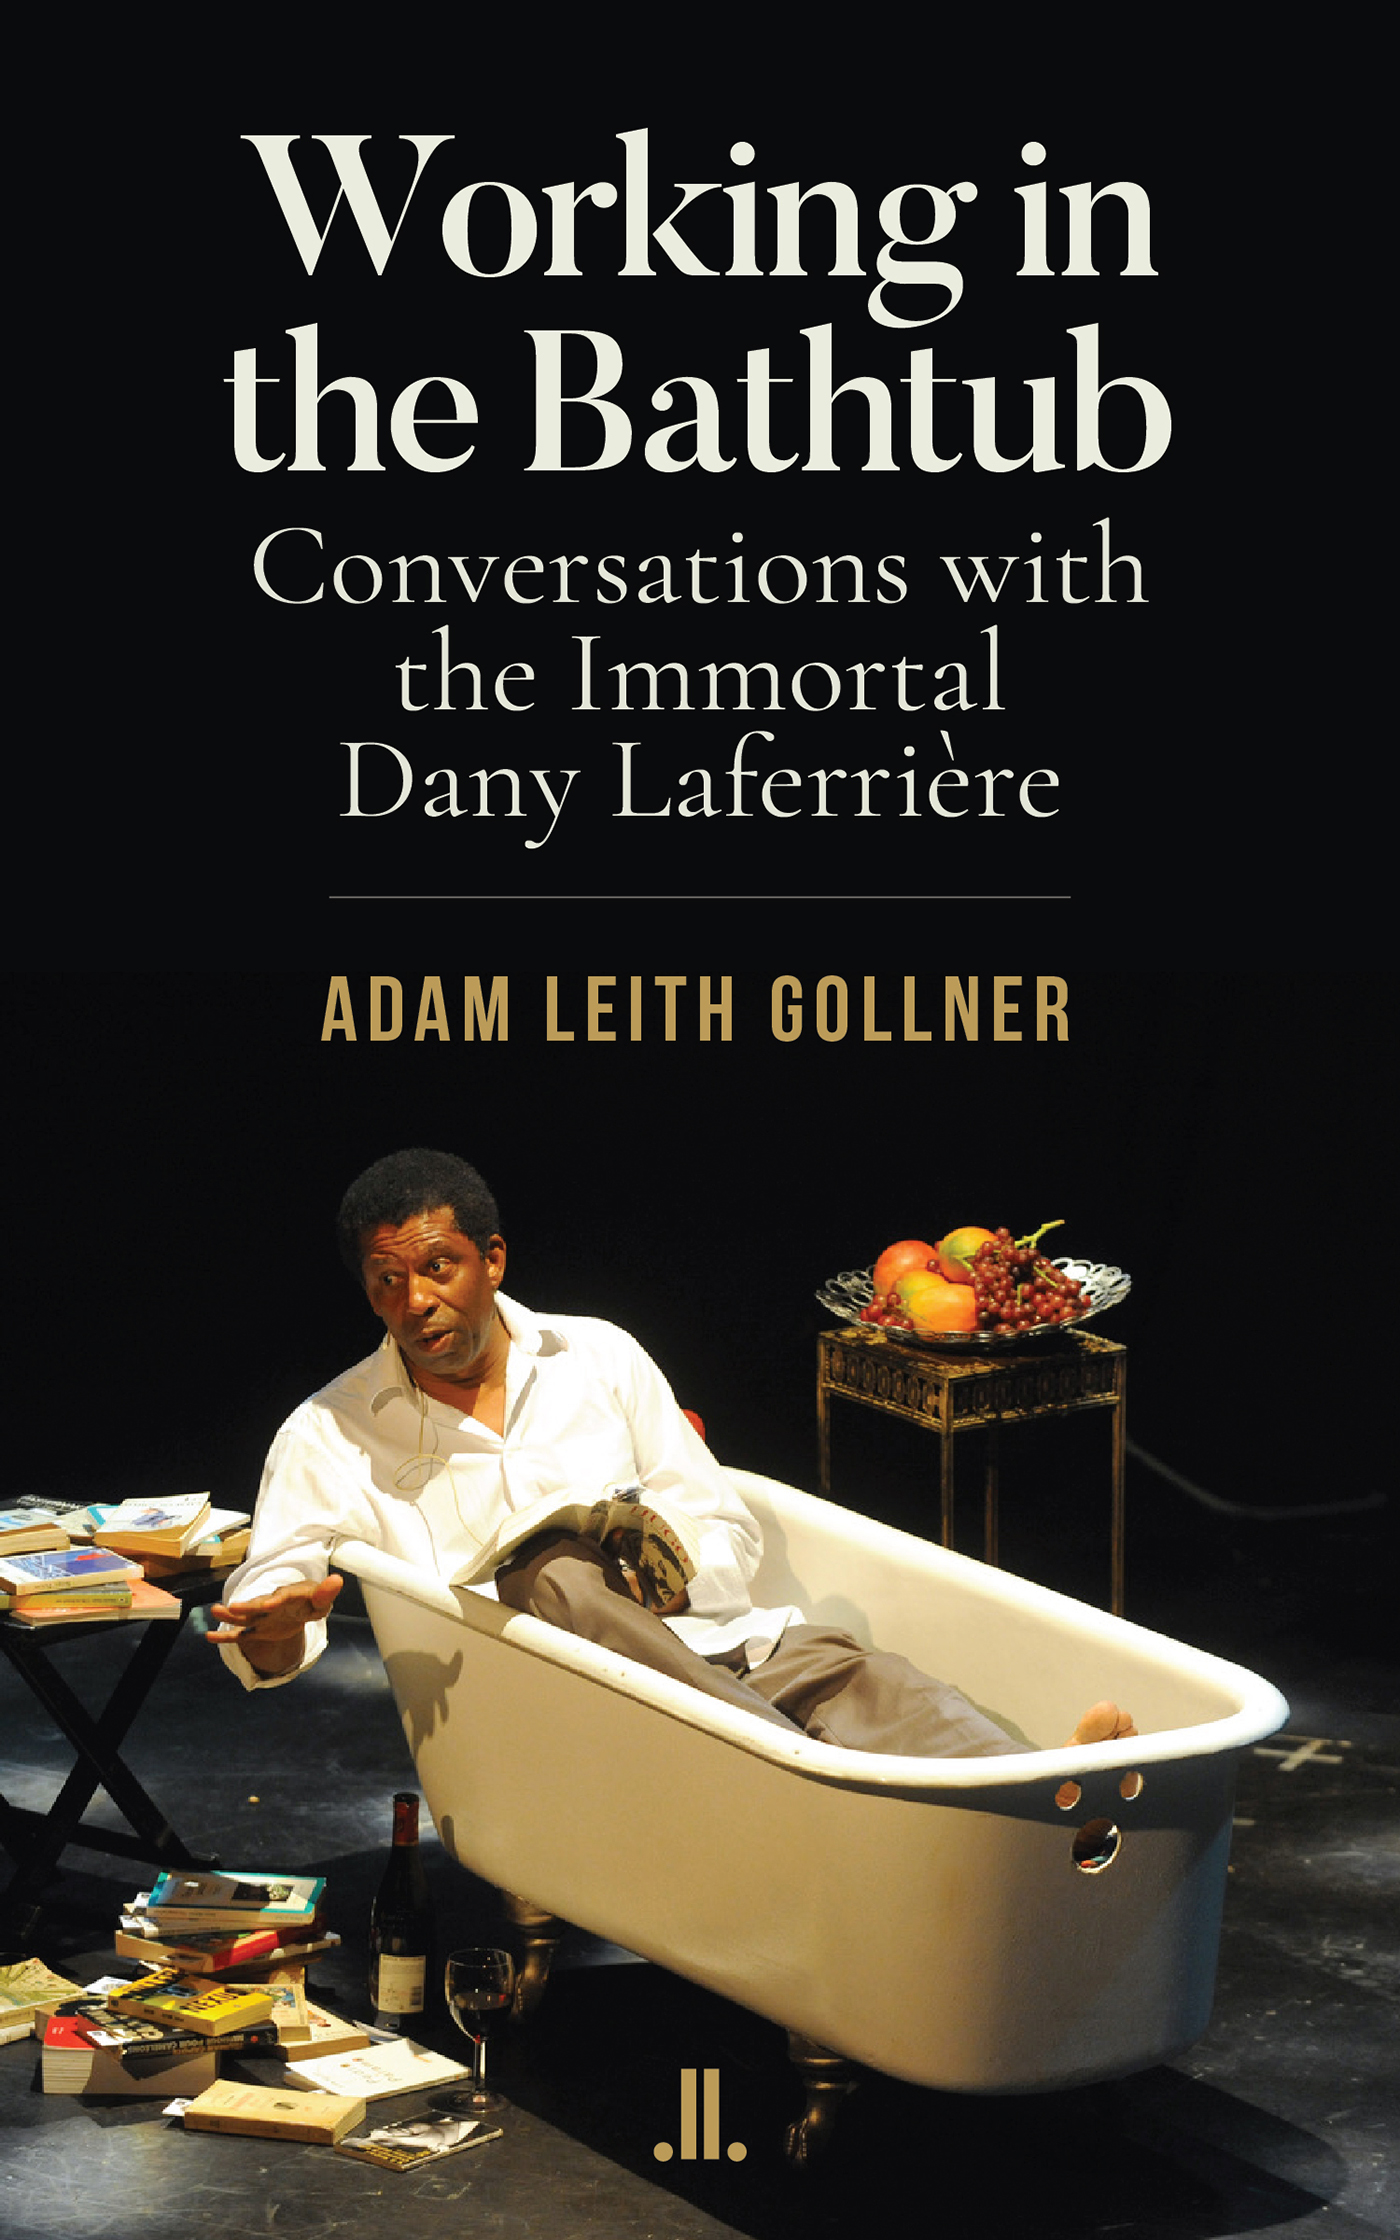 Working in the Bathtub: Conversations with the Immortal Dany Laferrière by Adam Leith Gollner | Linda Leith Publishing, 2020